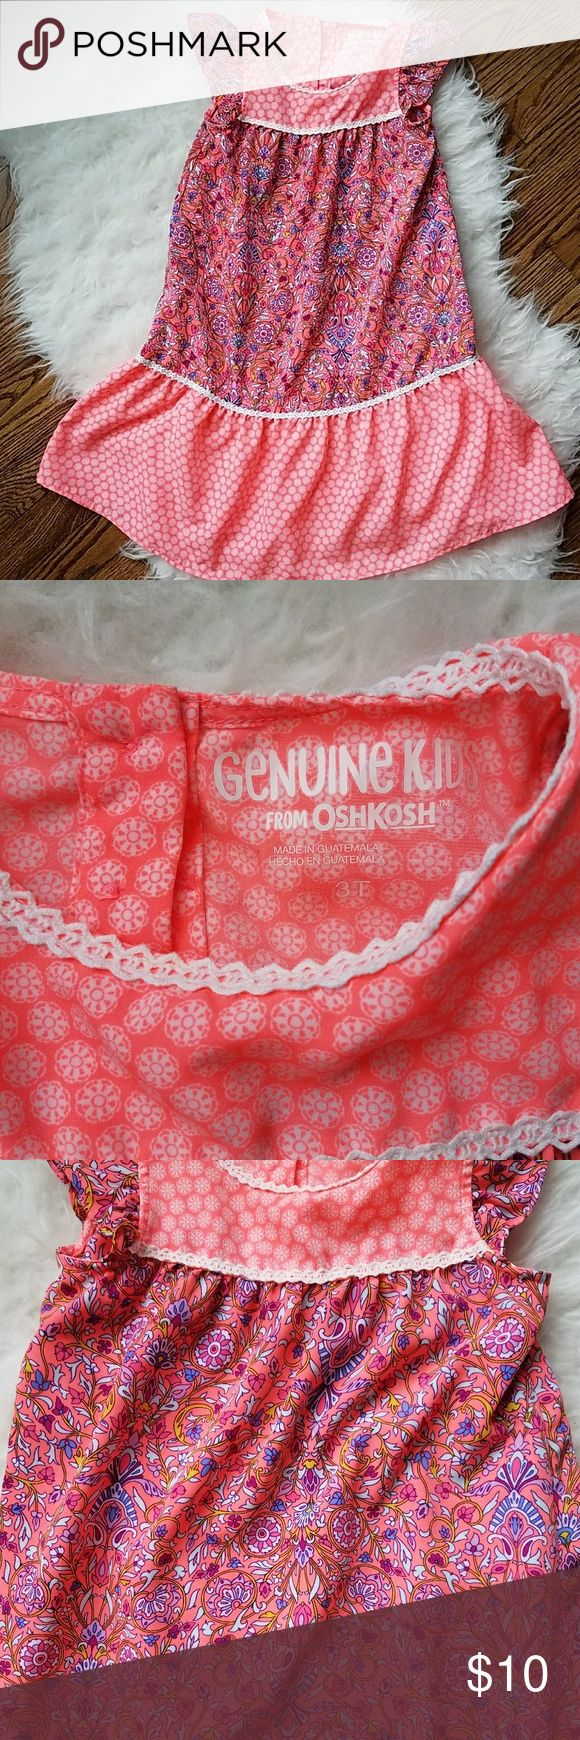 Genune Kids 3T girl's maxi dress, coral paisley Adorable coral paisley pattern genuine kids maxi dress. Worn a handful of times. Super cute and comfortable. Osh Kosh Dresses Casual